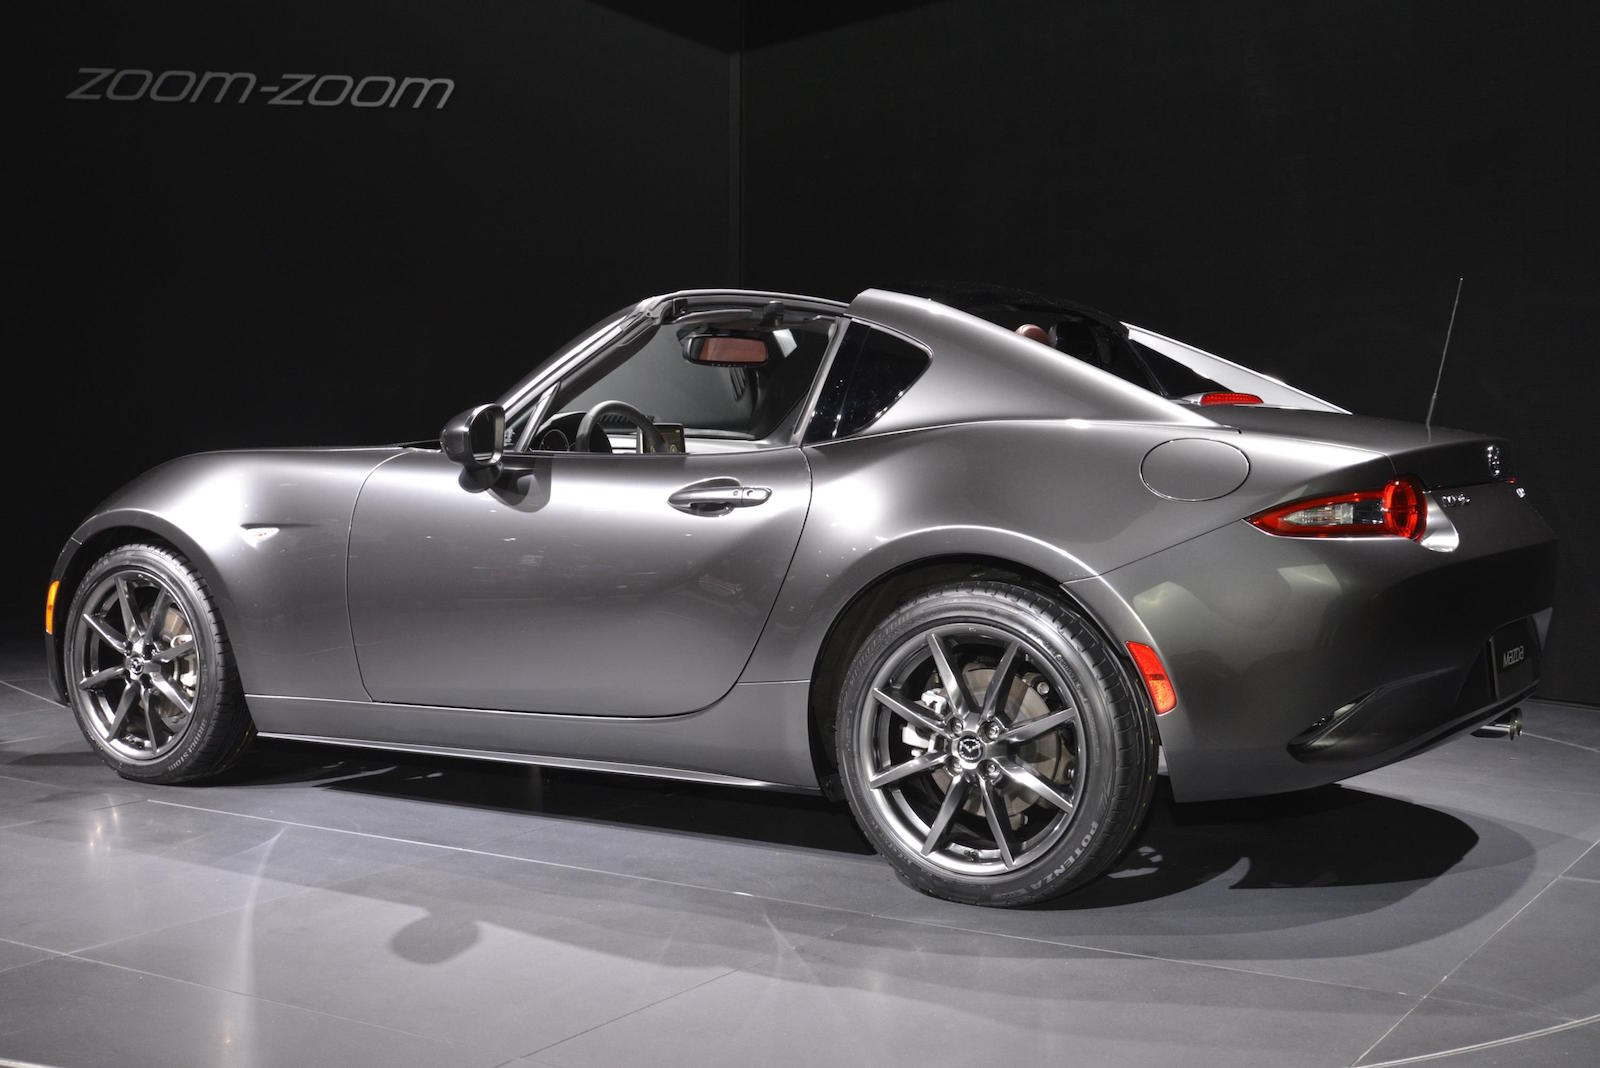 Mx 5 Rf Price >> Used Mazda Mx 5 Cars Find Mazda Mx 5 Cars For Sale | Autos Post